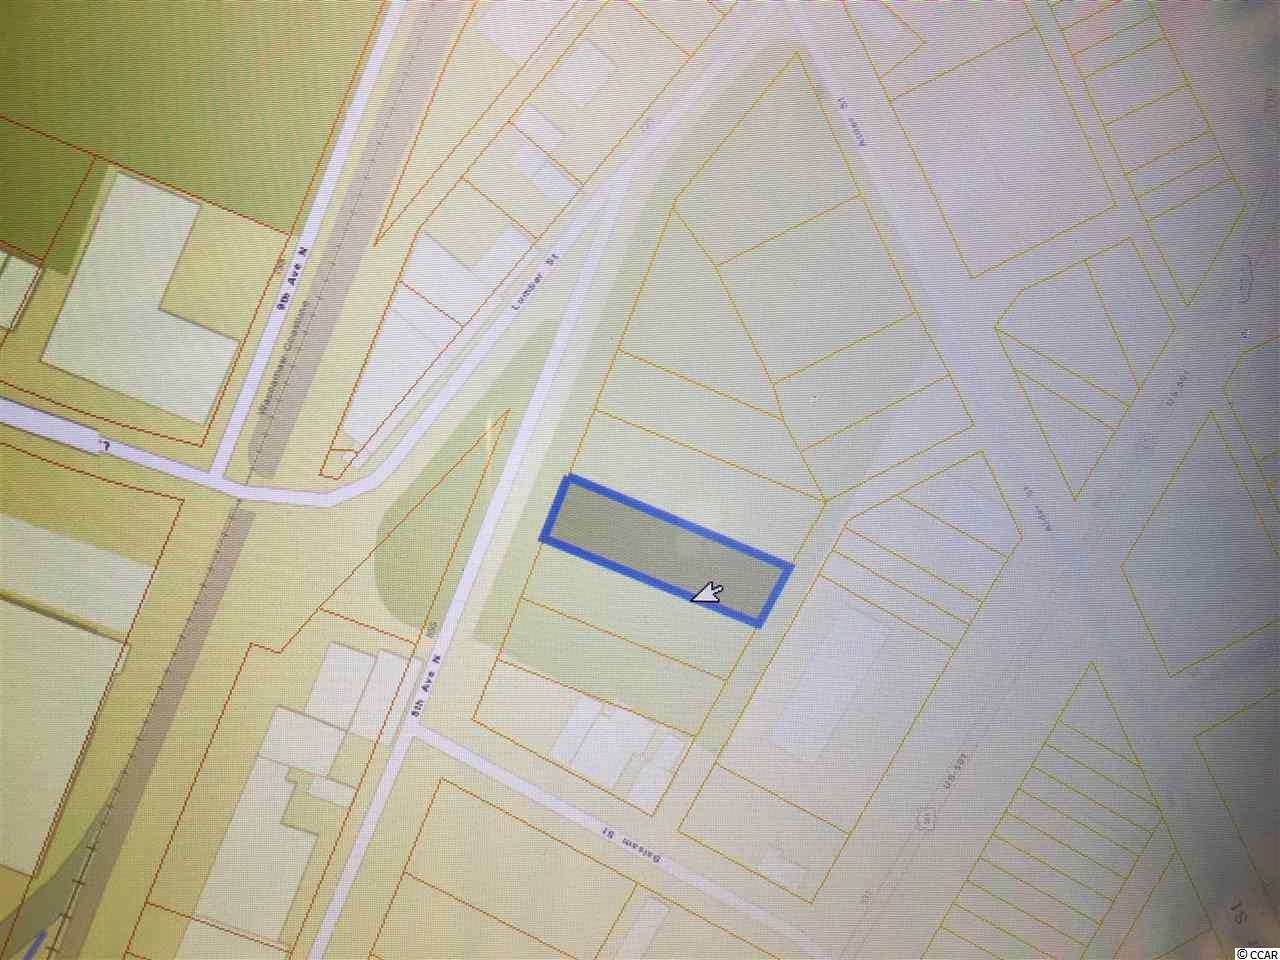 0.21 Acres in Myrtle Beach City Limits.  Zoned C-3  Close to US Hwy 501